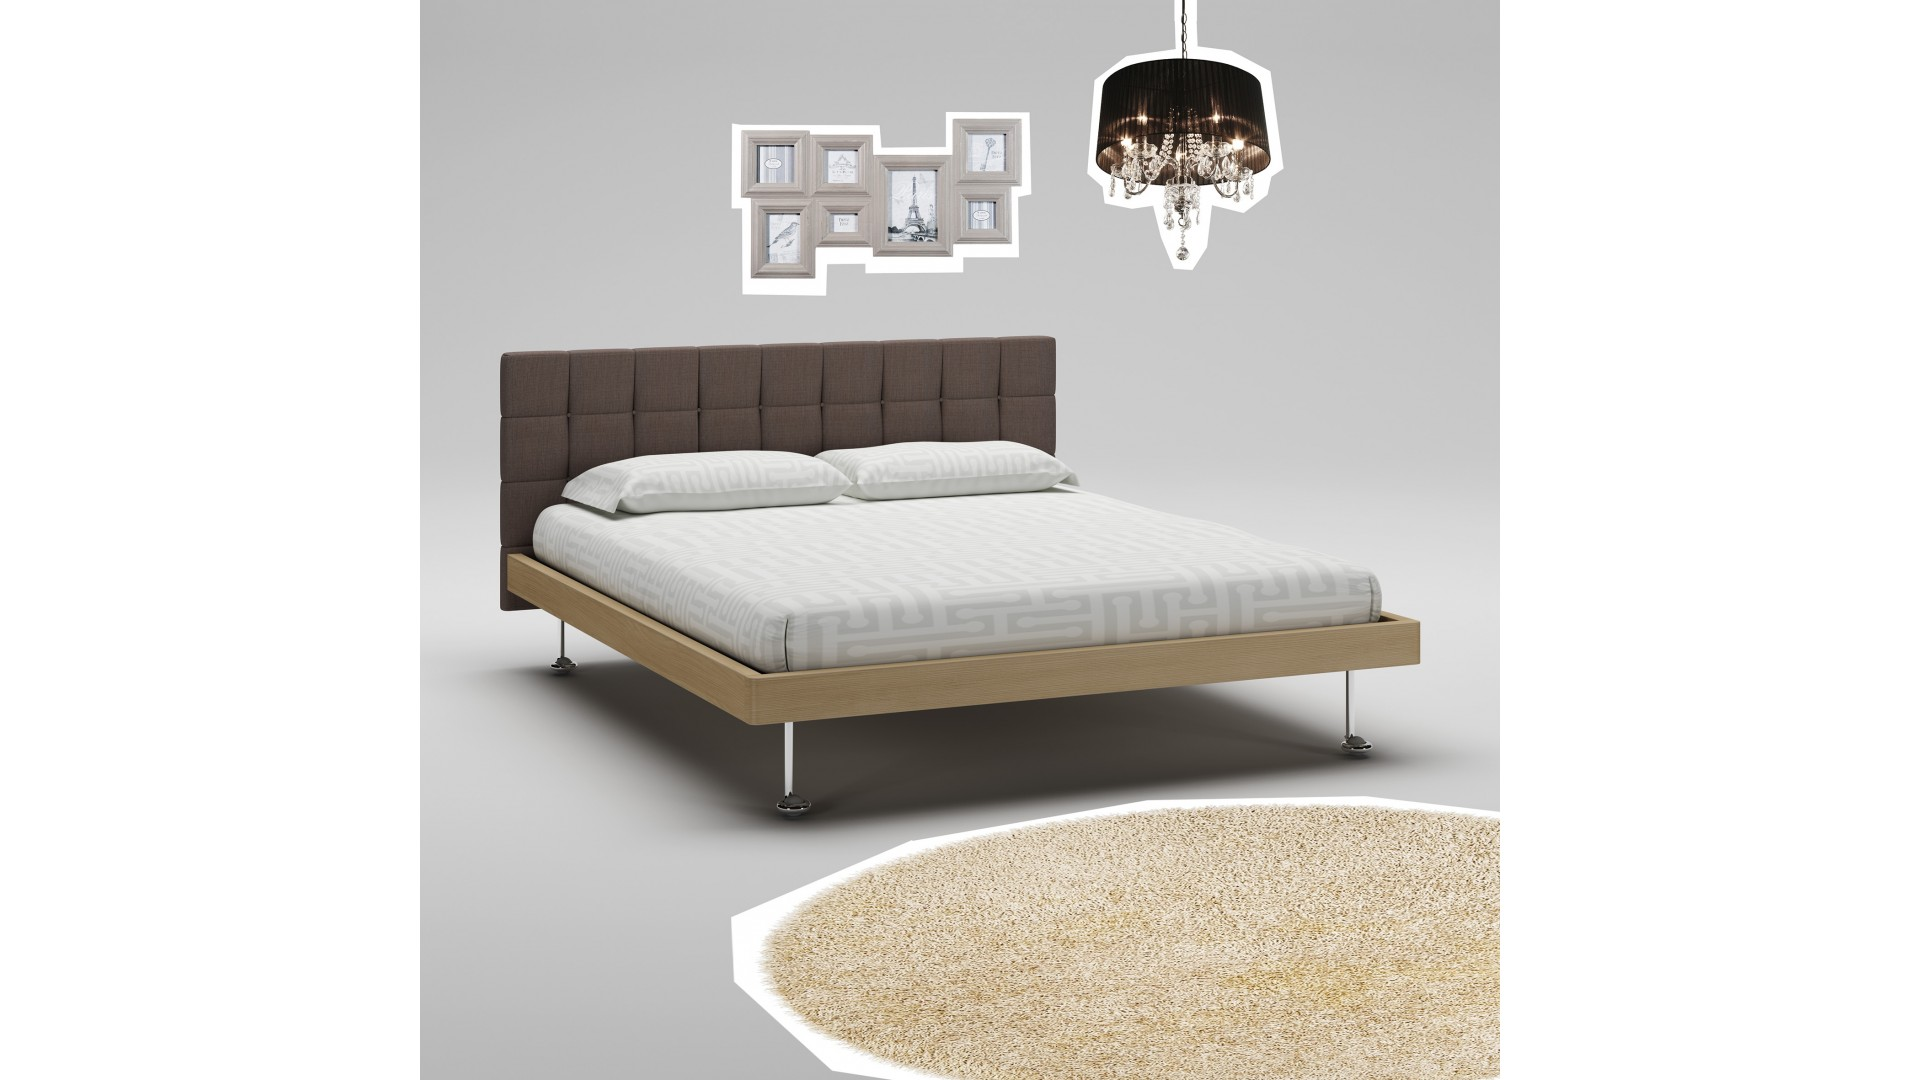 lit adulte avec t te de lit tissu marron moretti compact so nuit. Black Bedroom Furniture Sets. Home Design Ideas